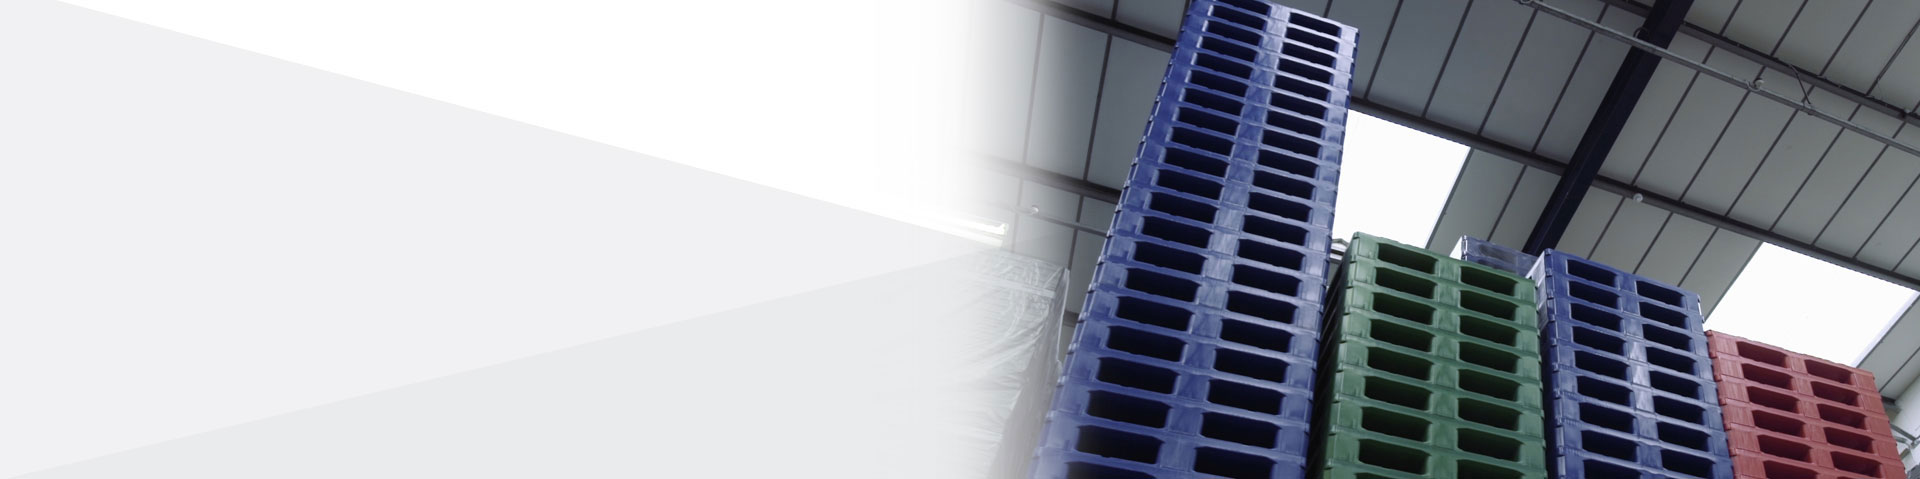 The UK's largest range of Plastic Pallets, Pallet Boxes and Small Containers